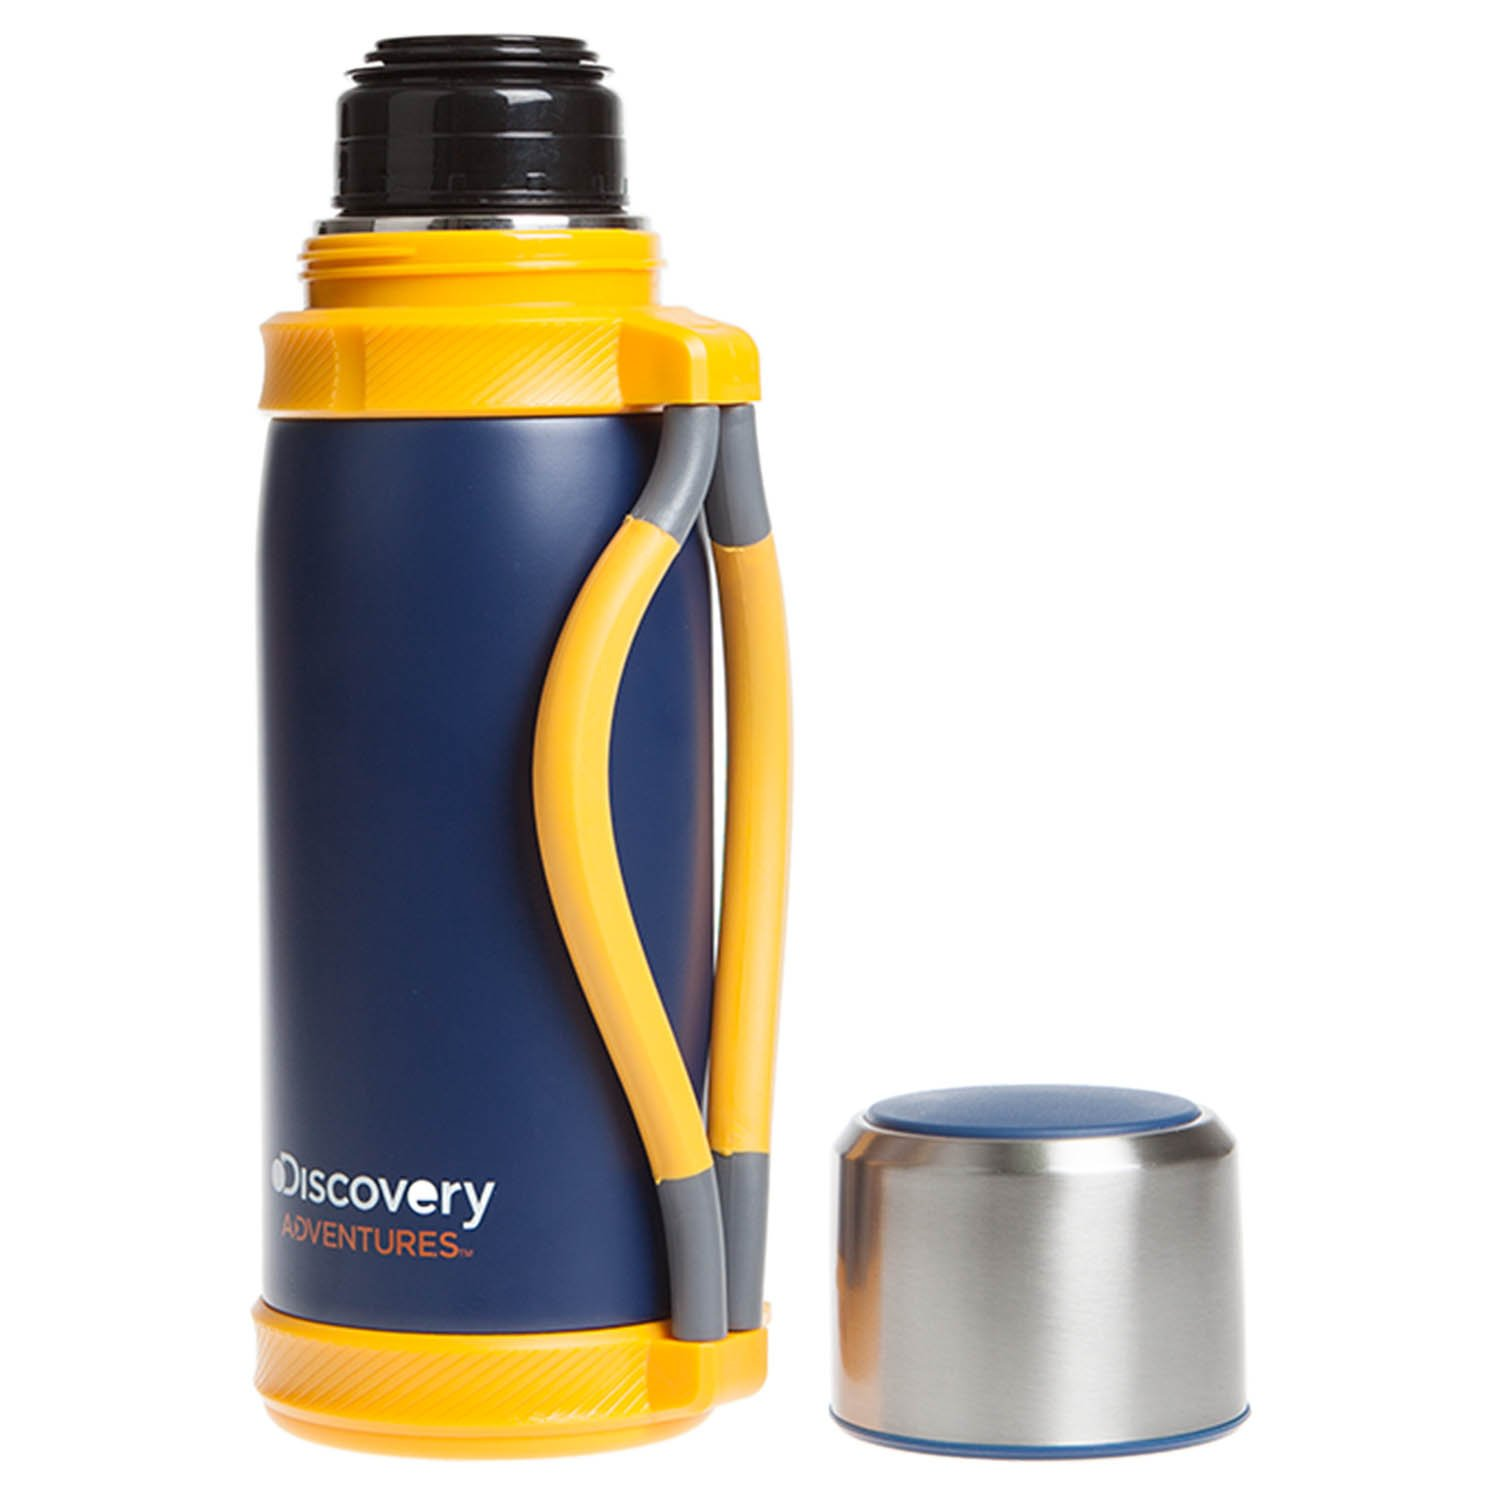 【予約販売品】 Discovery Adventures Blackhills - Stainless B0727XH9SZ Steel Adventurer Blackhills Flask - 1.2 Litre B0727XH9SZ, 前橋市:f309694e --- a0267596.xsph.ru